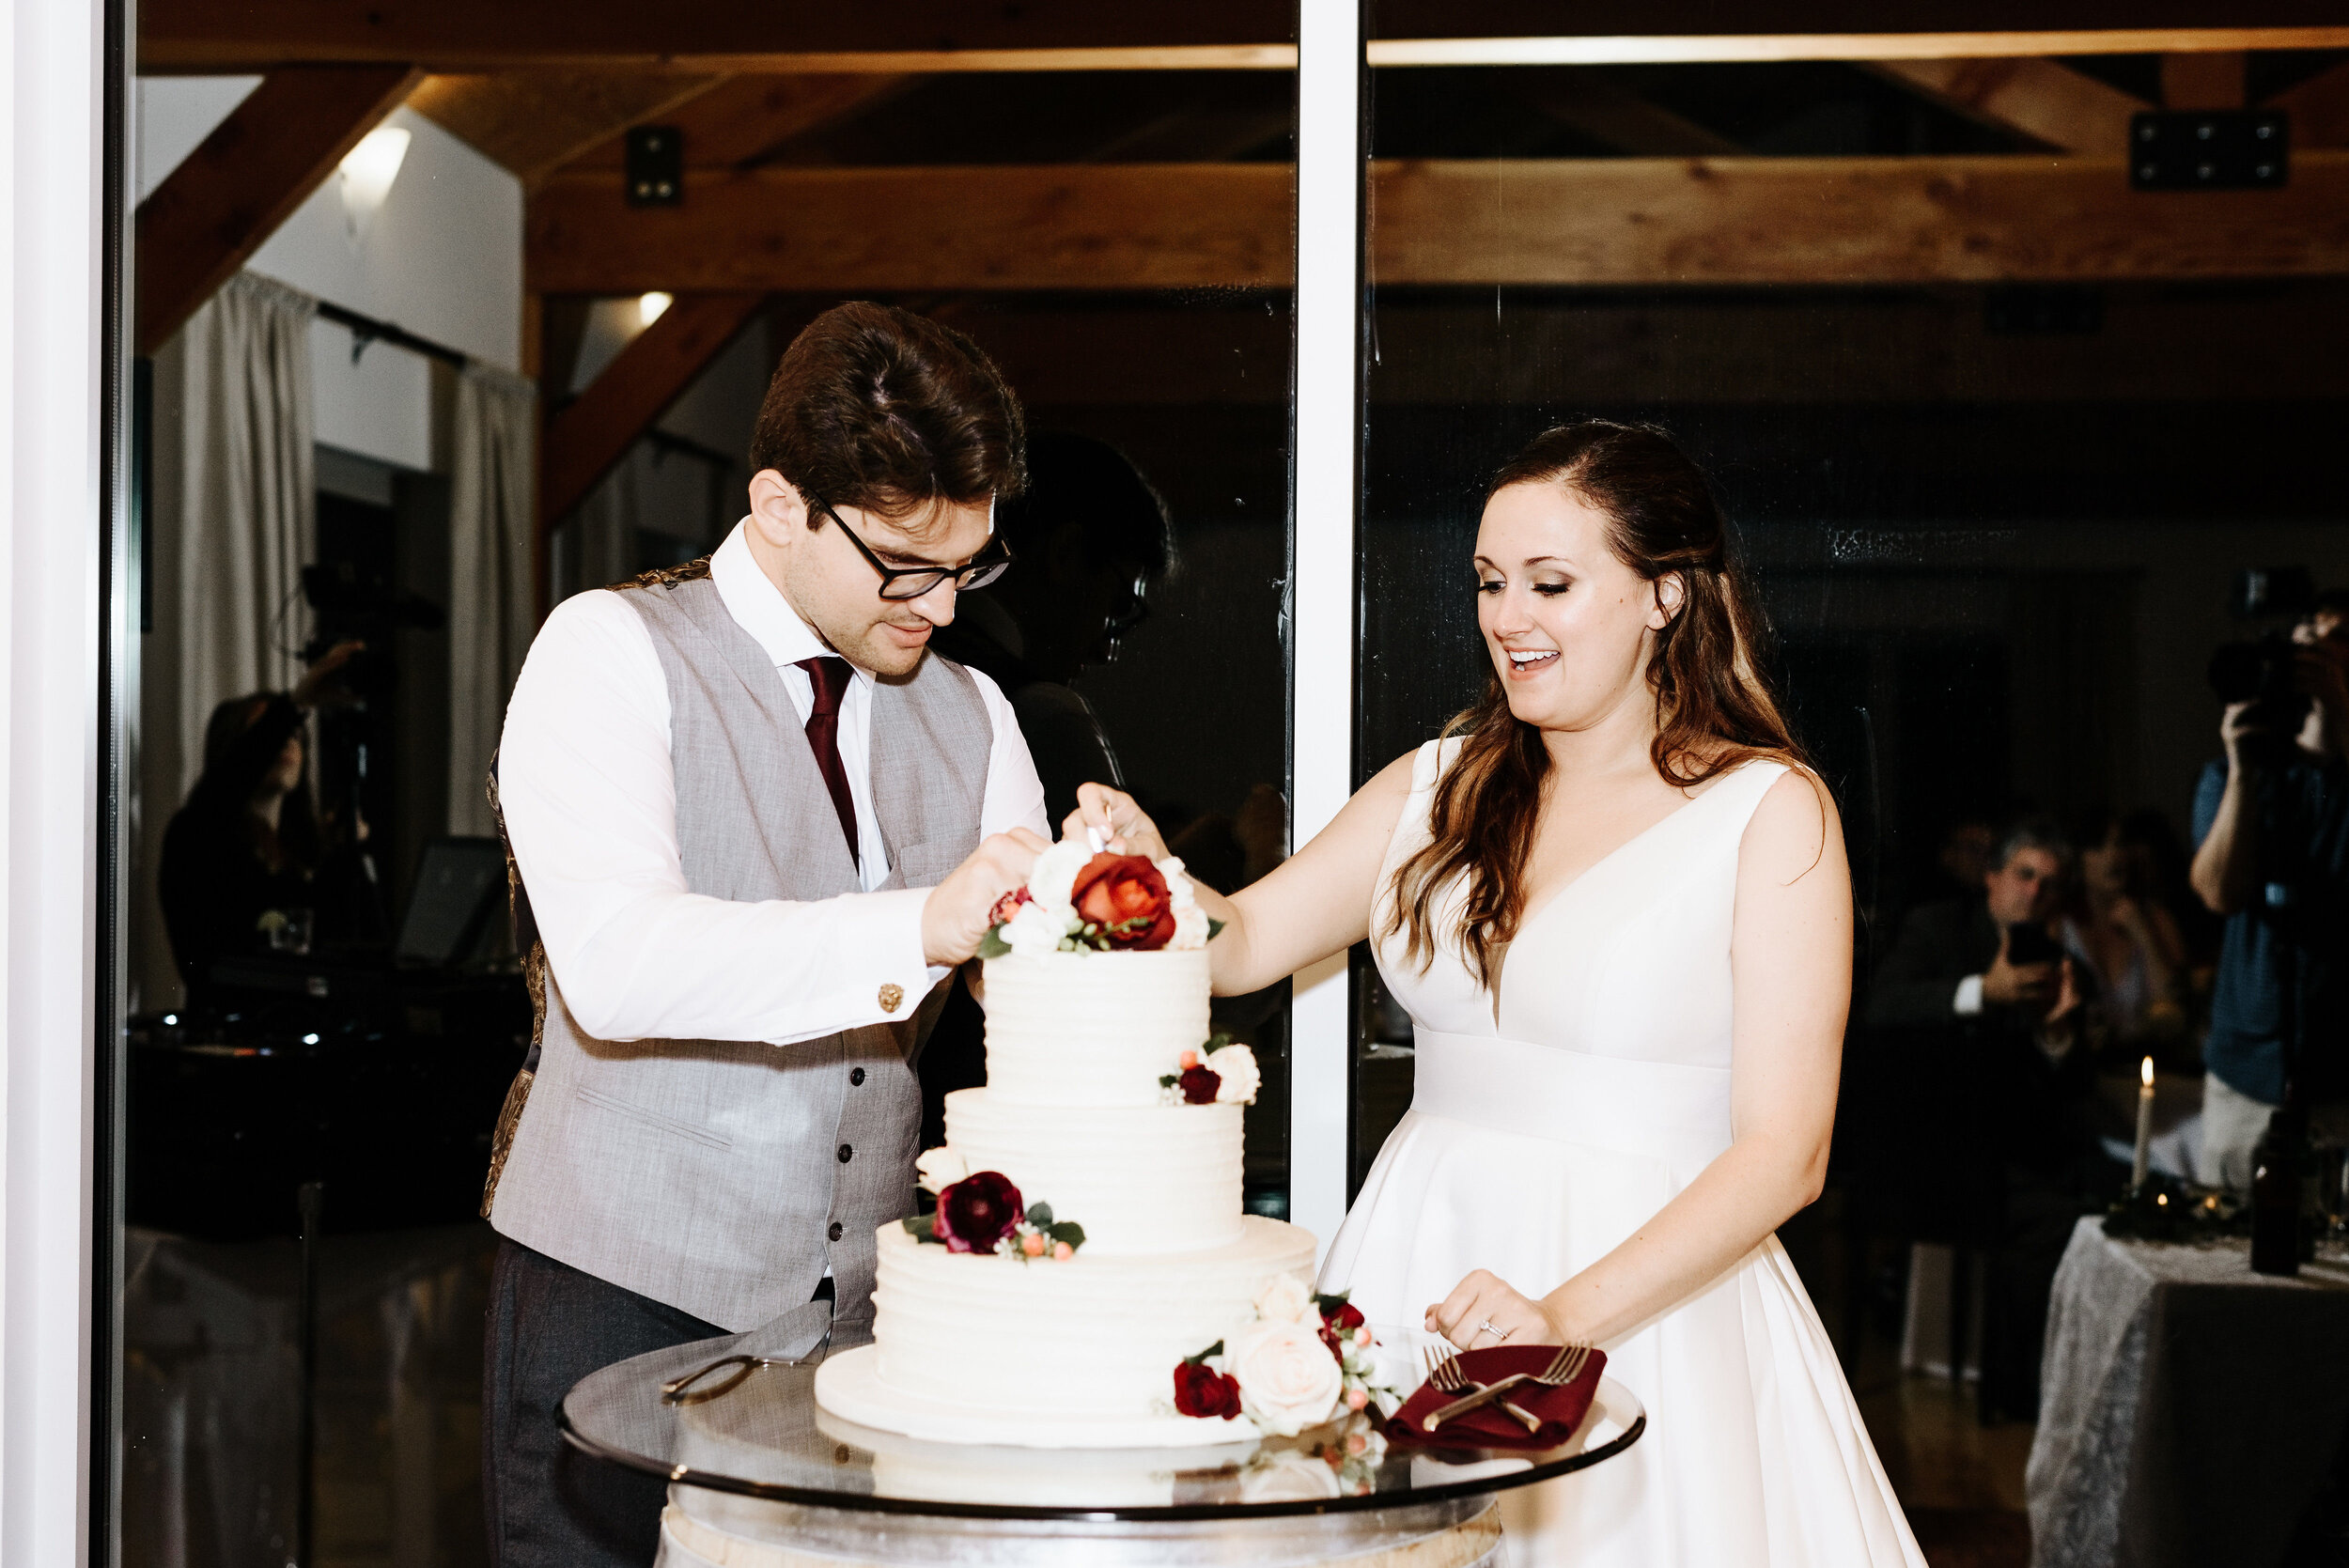 Allison_Nolan_Moss_Vineyards_Wedding_Charlottesville_Virginia_Photography_by_V_79.jpg